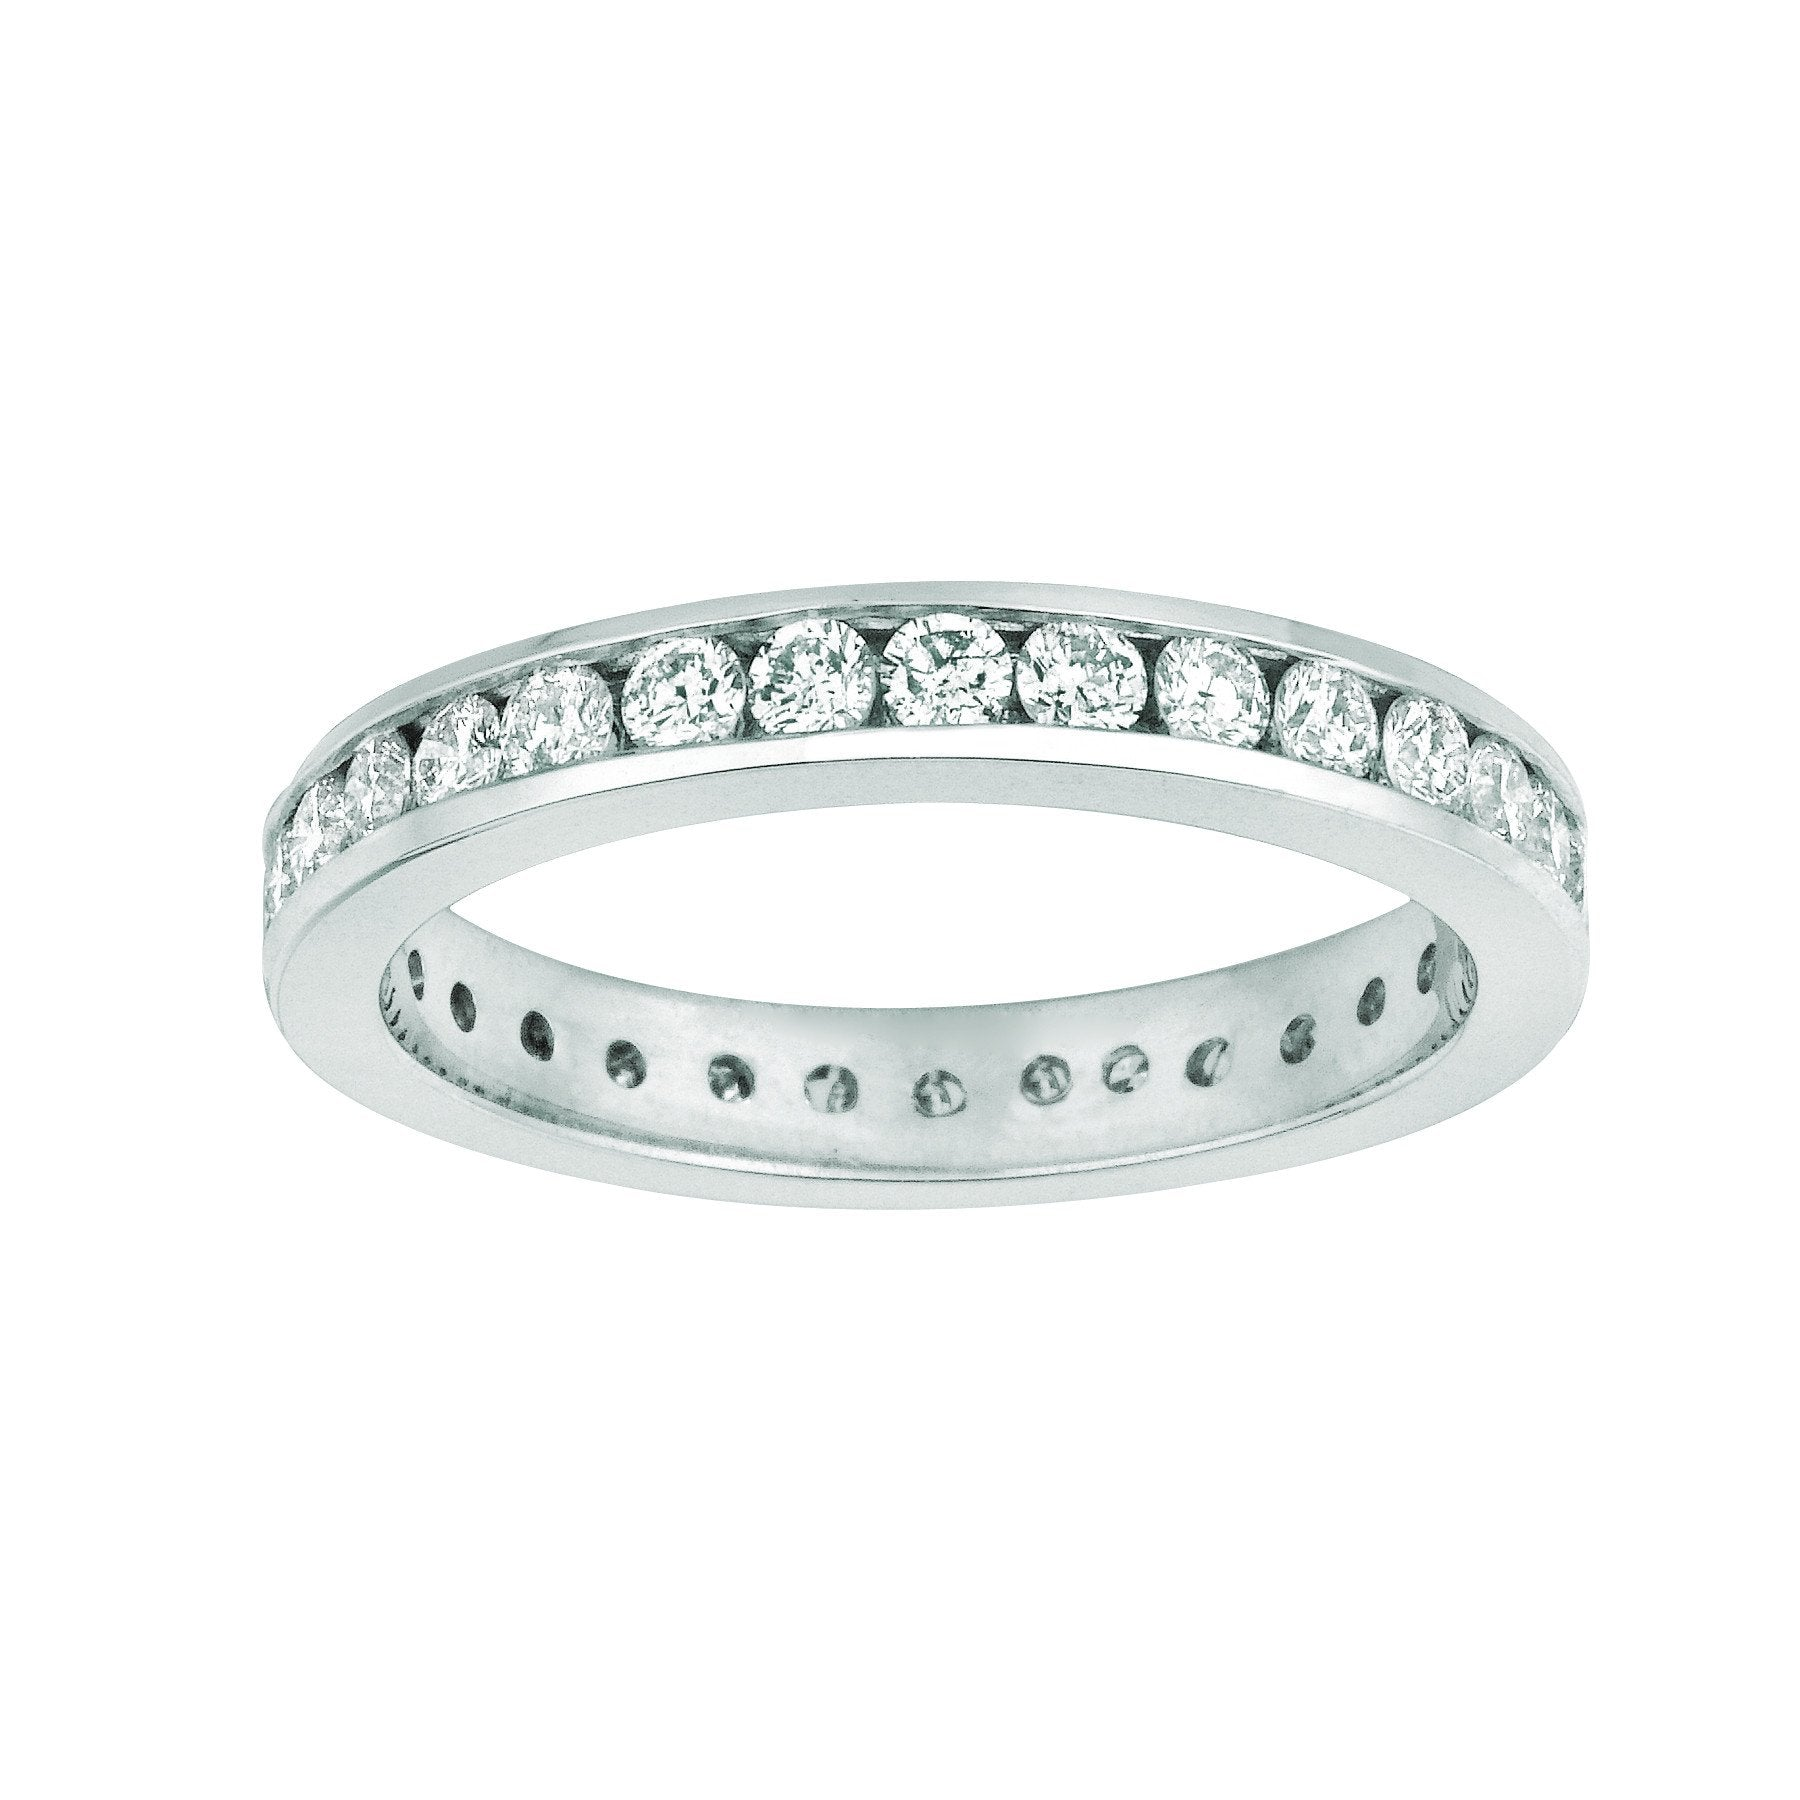 Channel Set Diamond Eternity Band 1.5 Carats 14K White Band